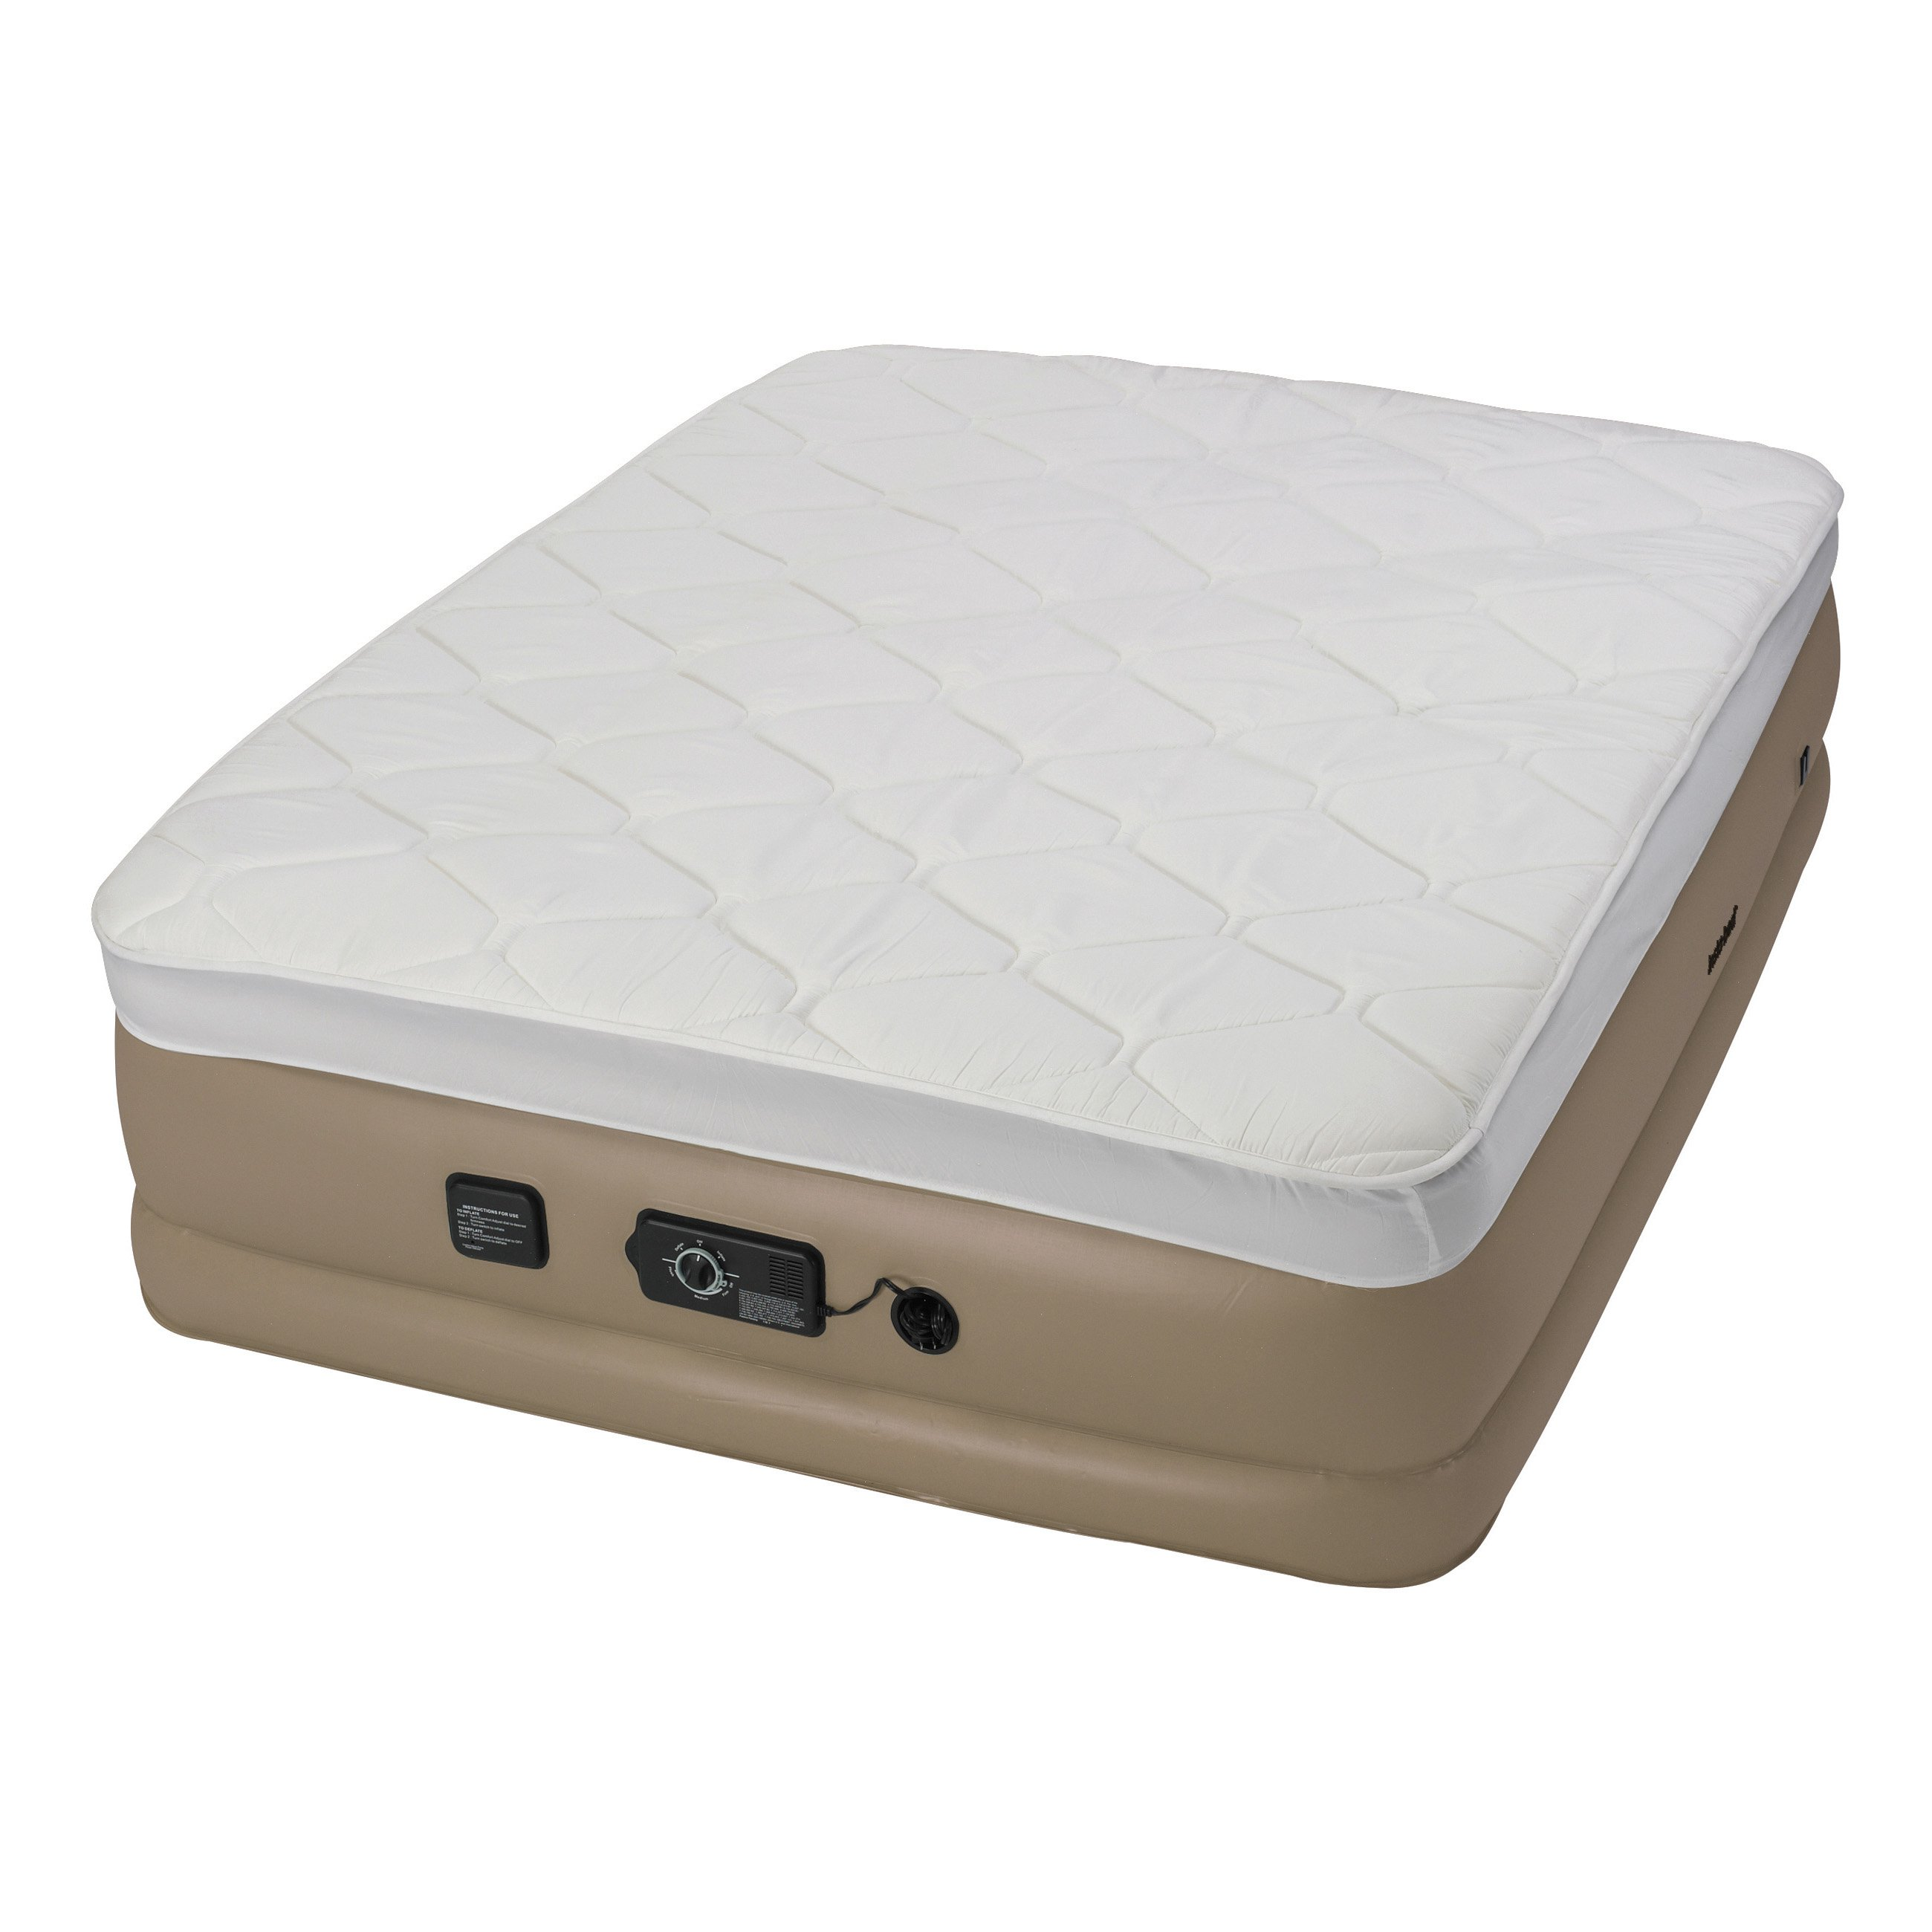 Insta-bed Raised Pillow Top Air Bed with NeverFlat AC Pump, Queen -  Walmart.com